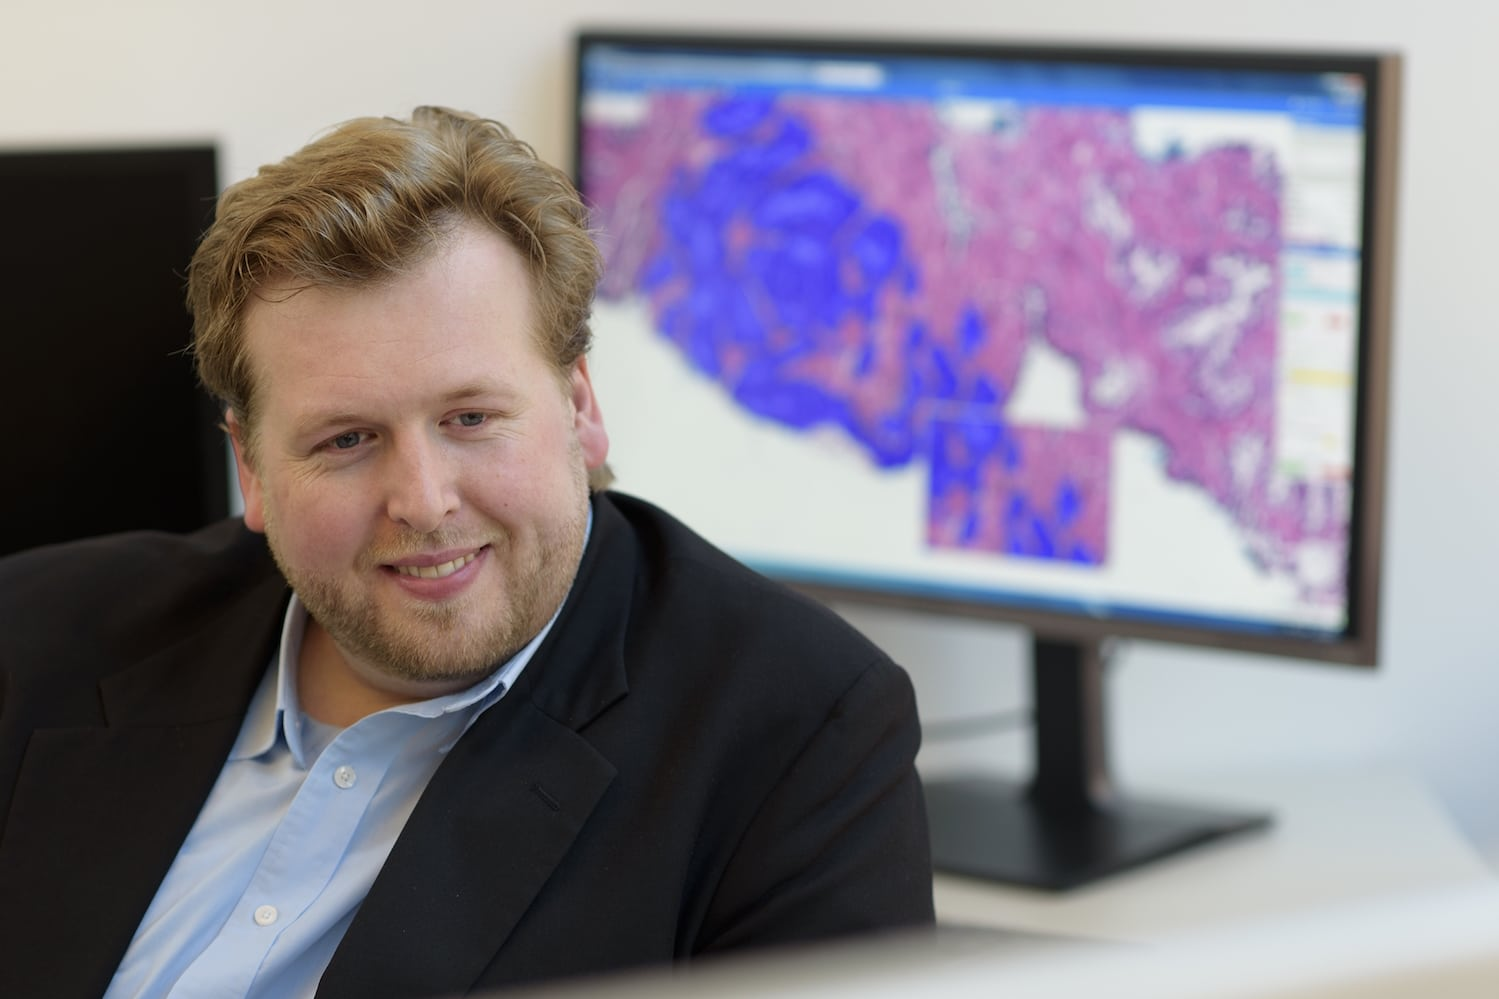 Thomas Fuchs, founder of Paige.AI and director of computational pathology in the Warren Alpert Center for Digital and Computational Pathology at Memorial Sloan Kettering Cancer Center